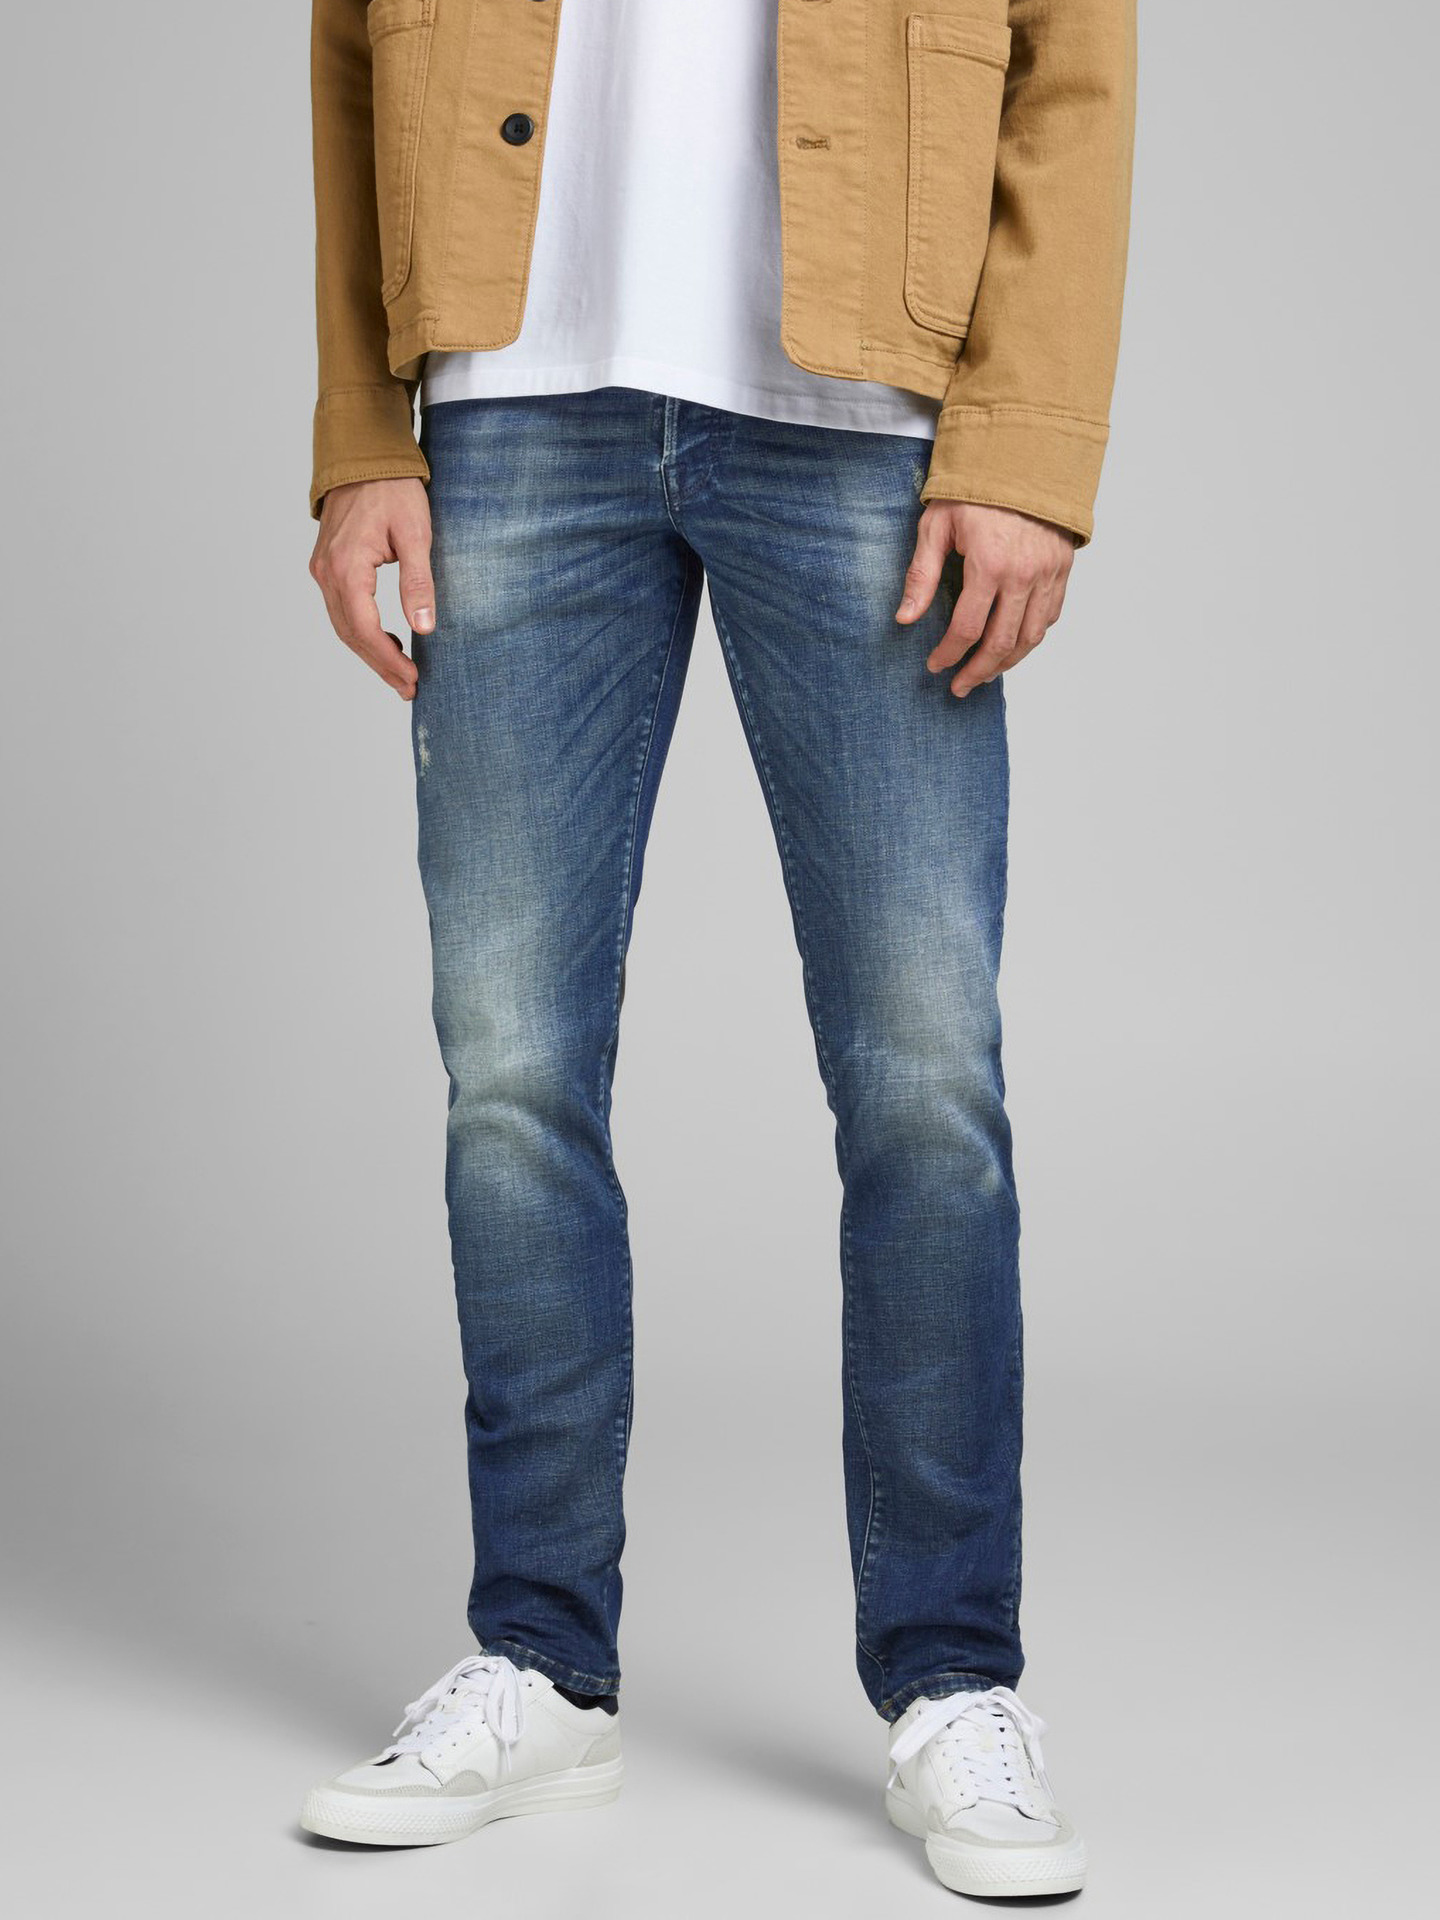 Glenn Rock Jeans Jack   Jones Modrá